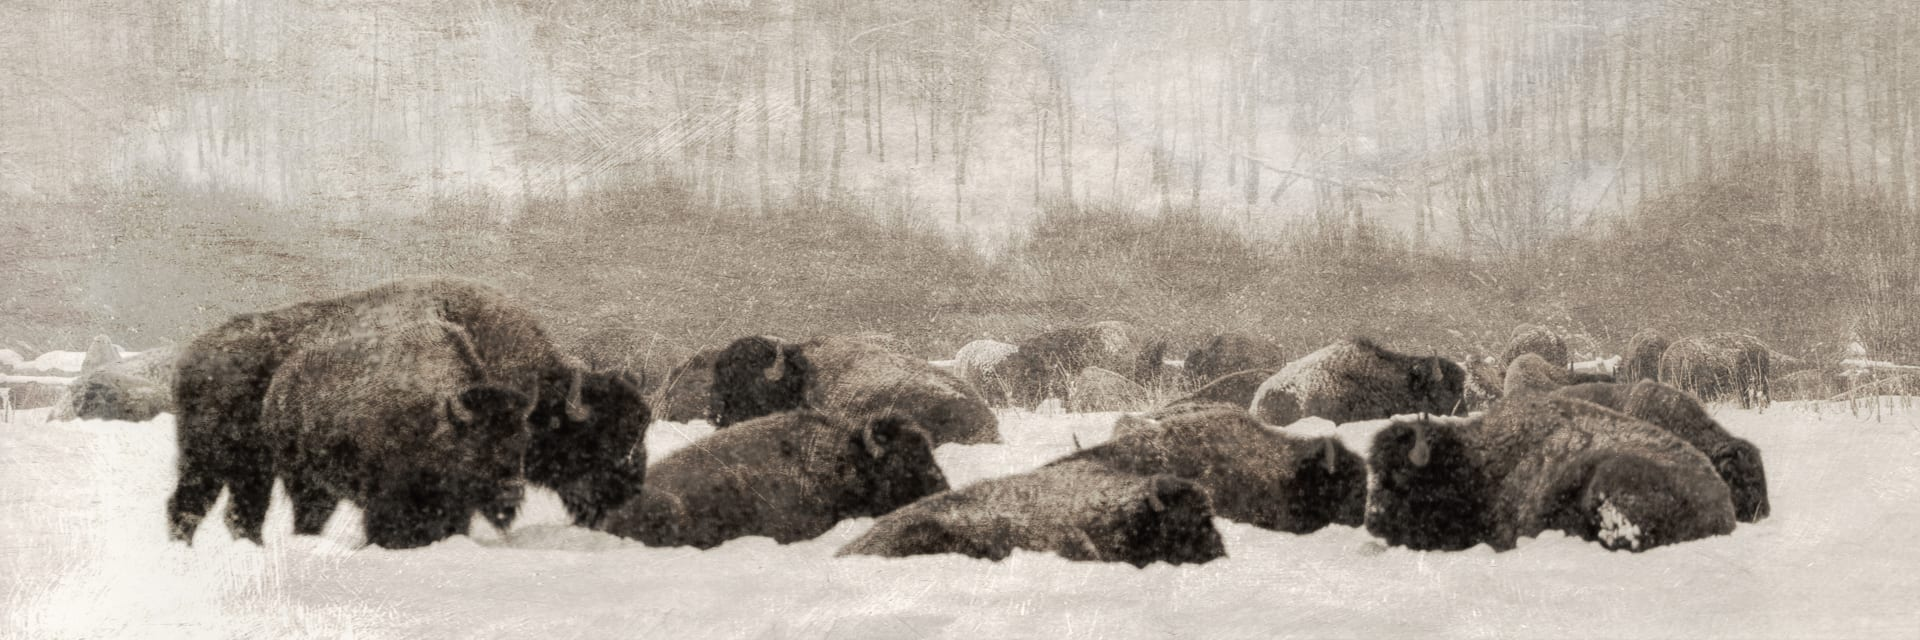 Bison in snow, antique-like photo.